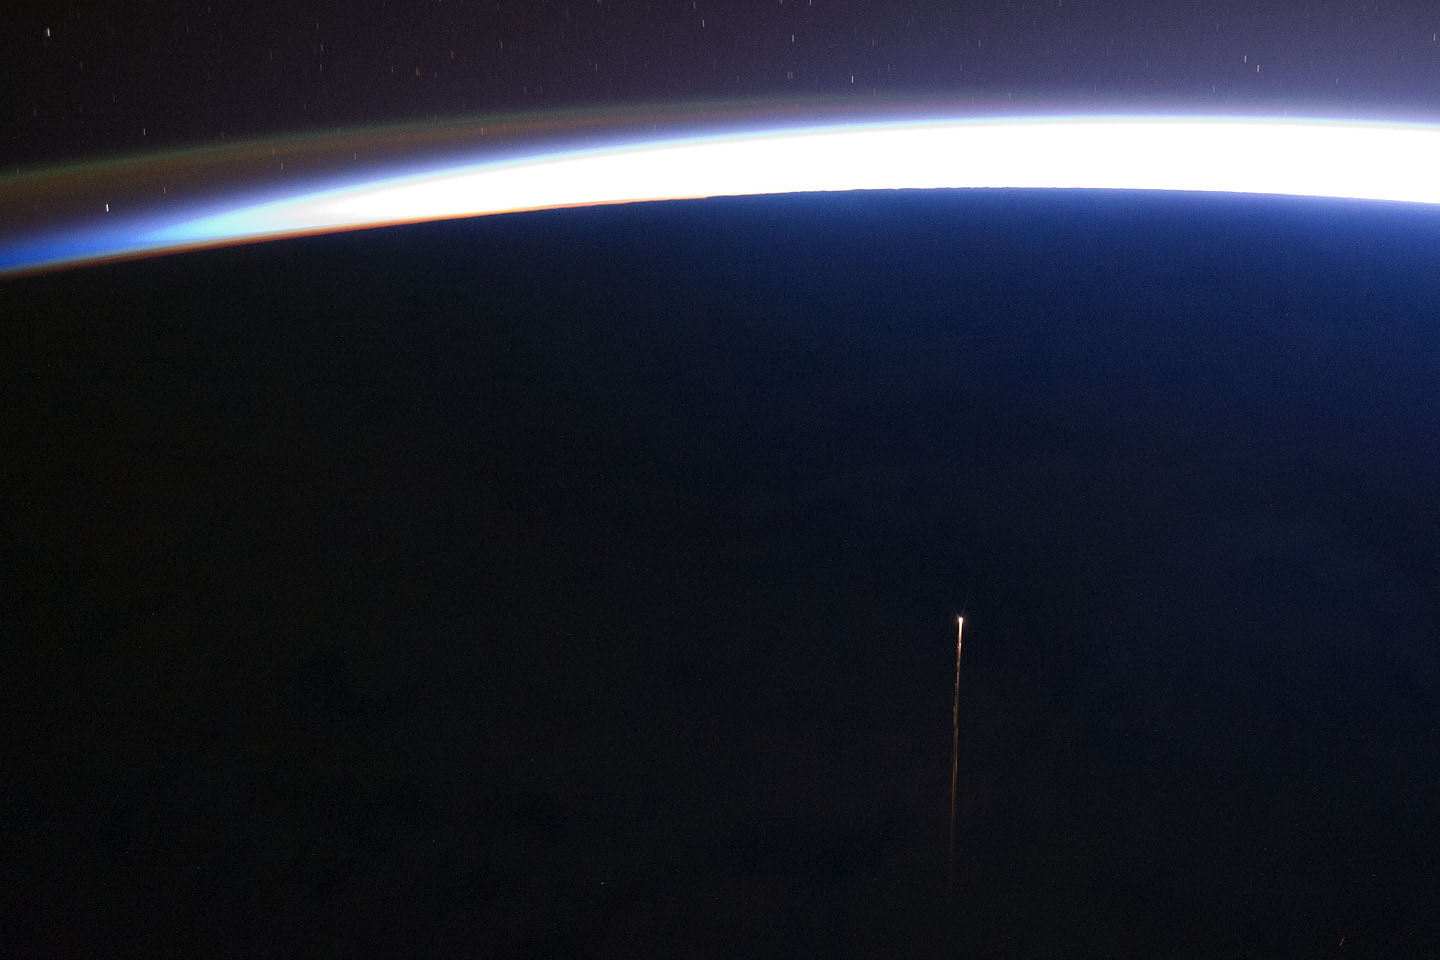 This astronaut photograph highlights the reentry plasma trail of a deorbiting spacecraft, the ISS Progress 42P supply vehicle (Russian designation M-10M). Acquired October 29, 2011. Image Credit: NASA